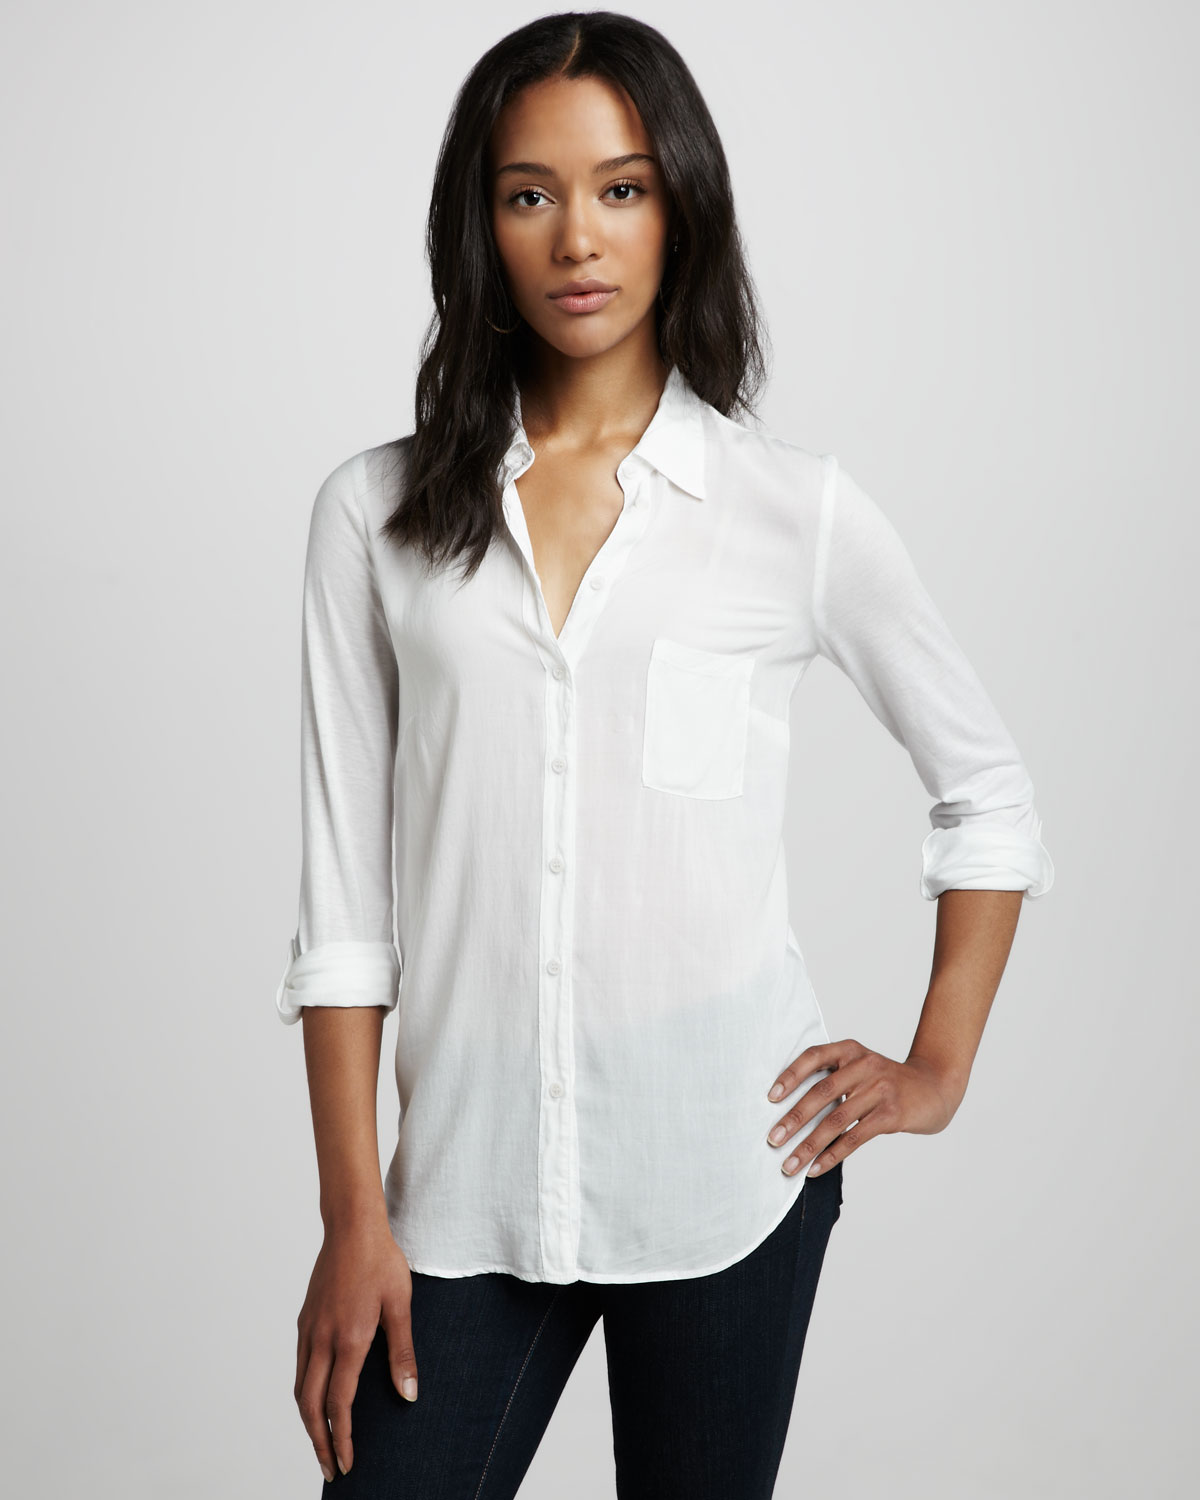 Shop the Brooks Brothers collection of women's blouses, tunics, shirts, tops, and dress shirts. Legendary quality and customer service are a click away. Classic-Fit Supima® Cotton Oxford Stripe Button-Down Shirt $ Free Standard Shipping on orders $ or more or pair a sleeveless button-up women's shirt with a pair of crisp.